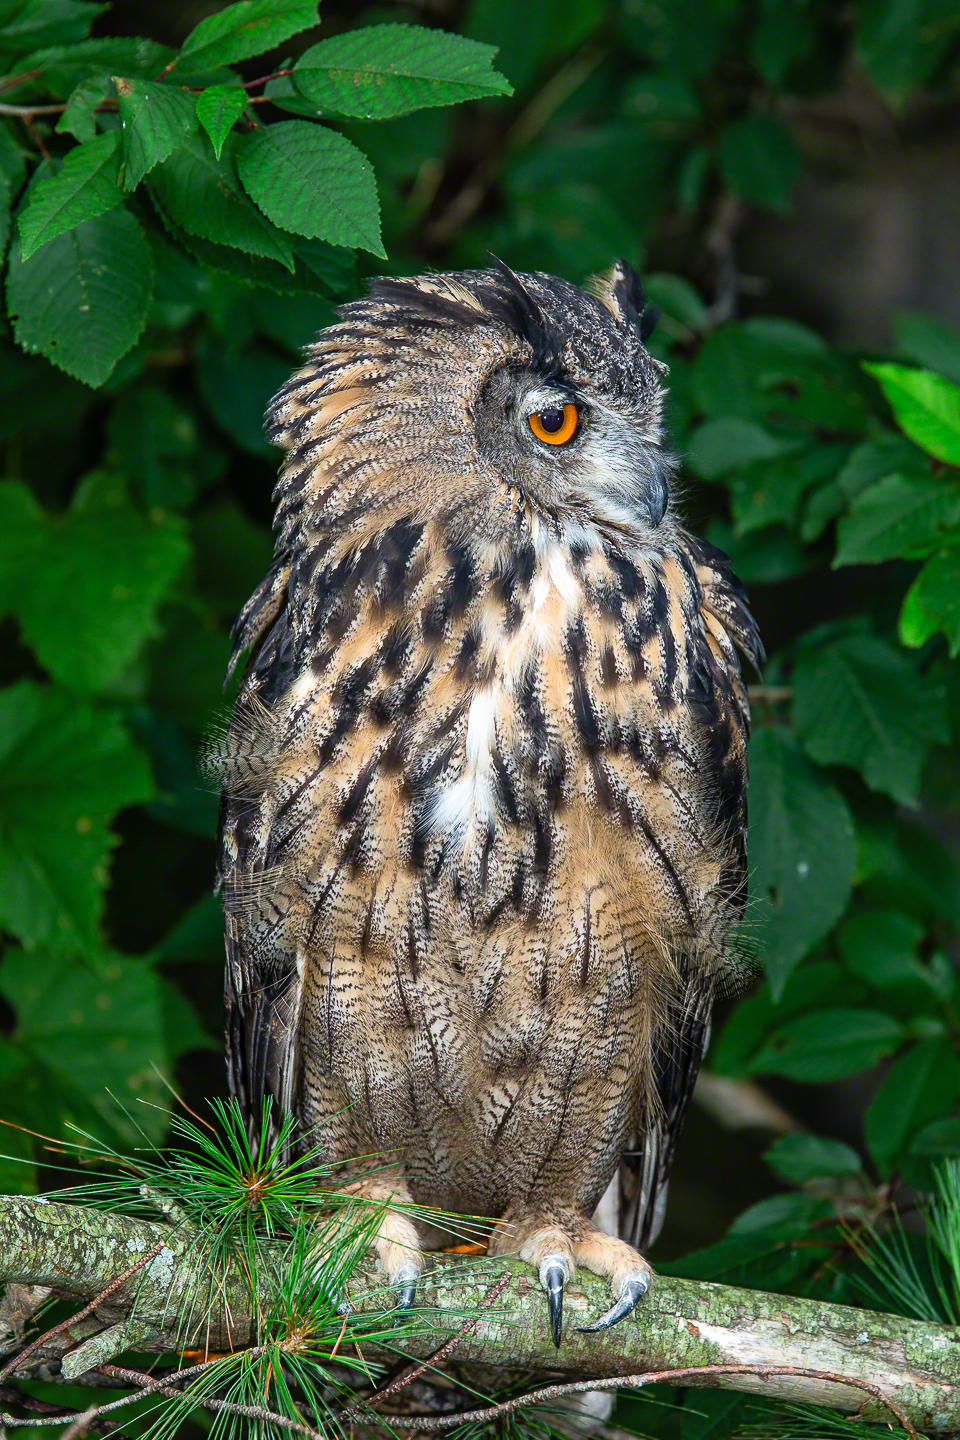 Siberian Eagle Owl - Fill Flash Added